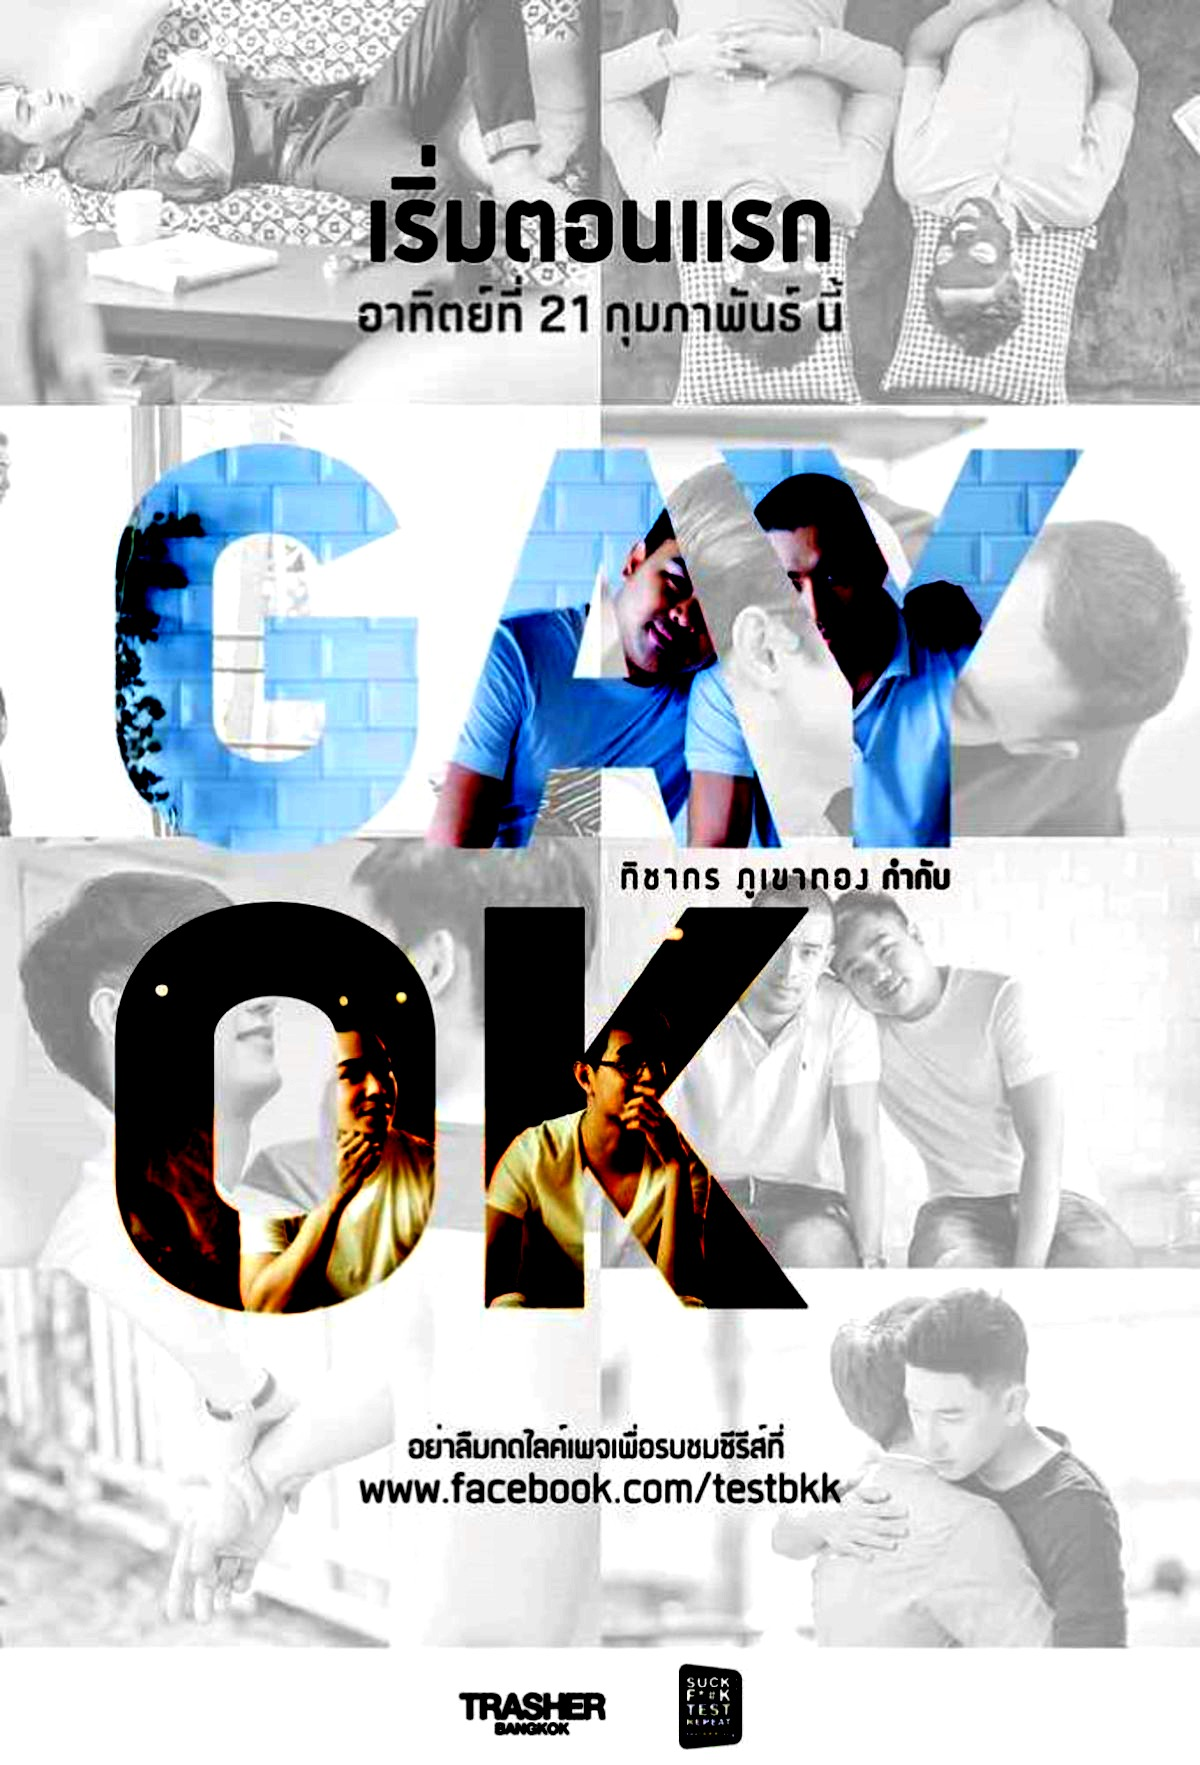 Gay OK Bangkok (TV Series 2016– ) - IMDb